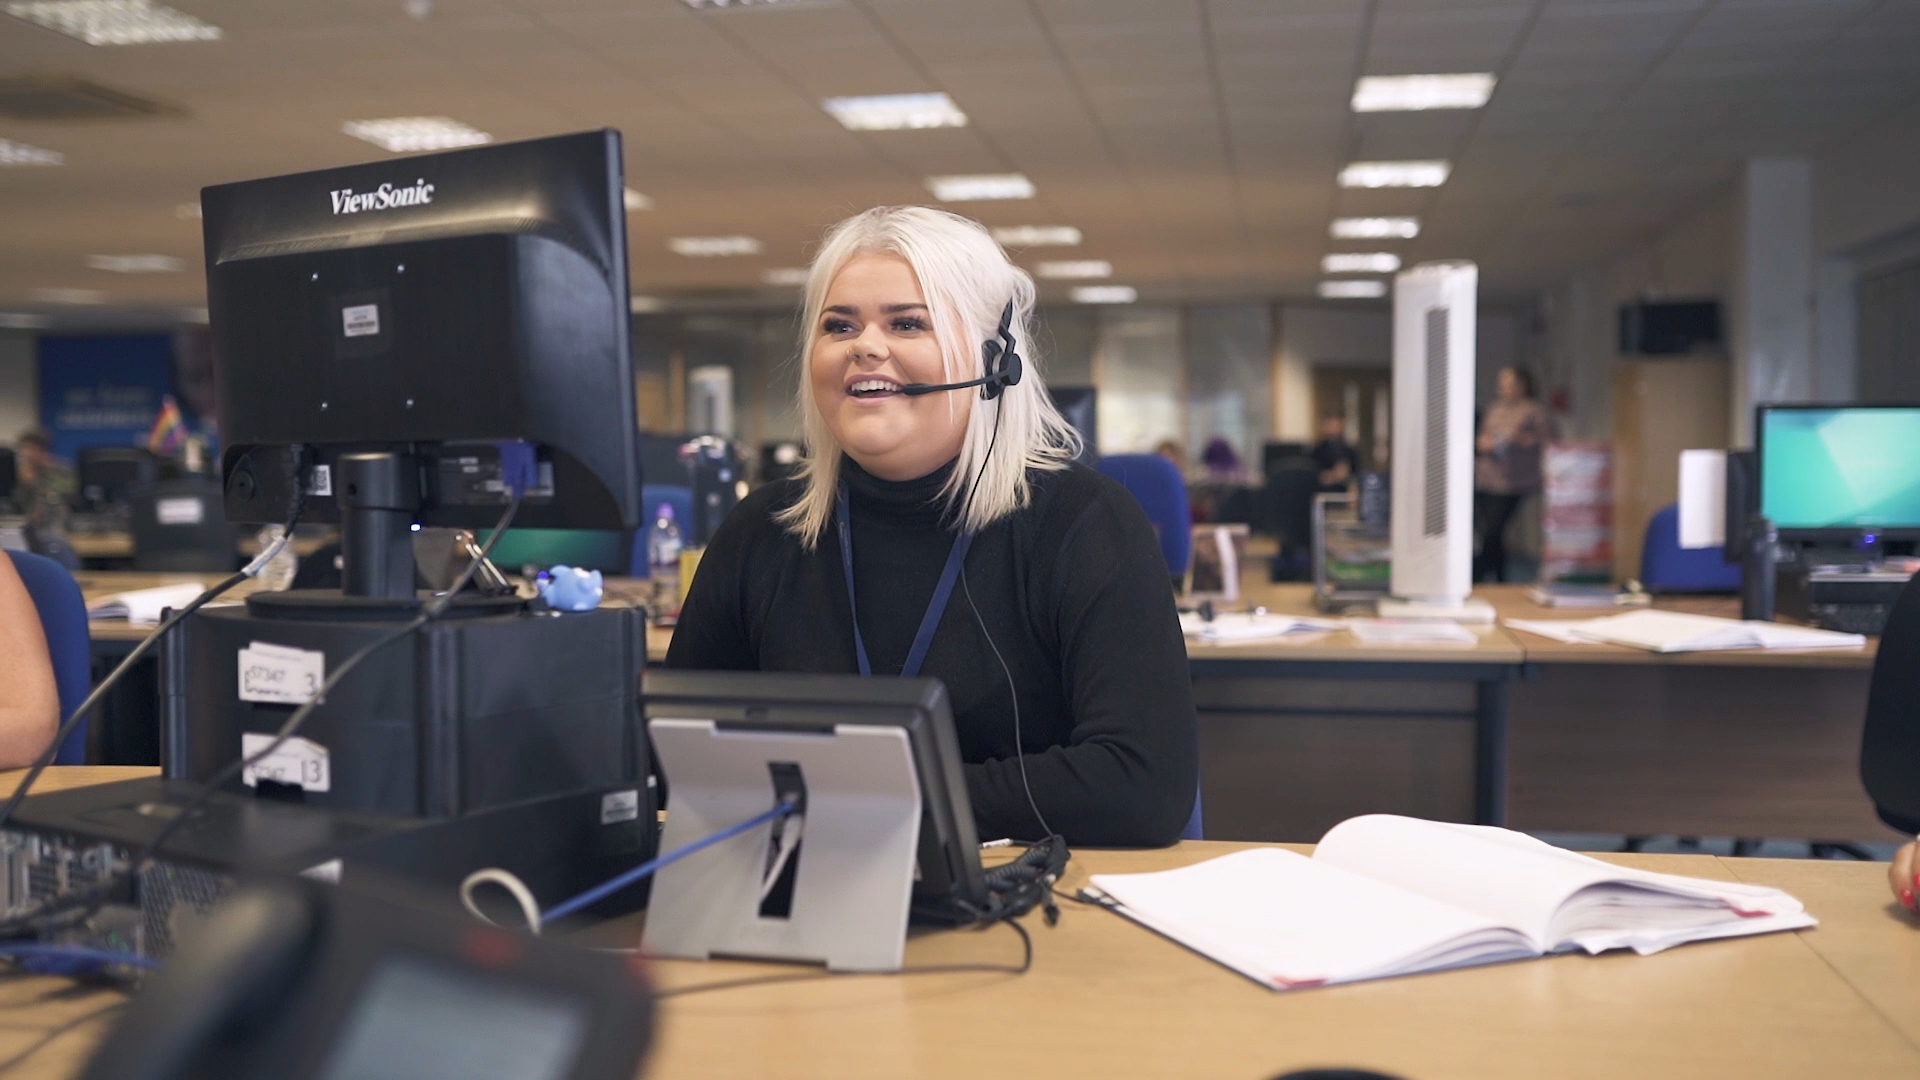 How have Contact Centres adapted to provide better customer service